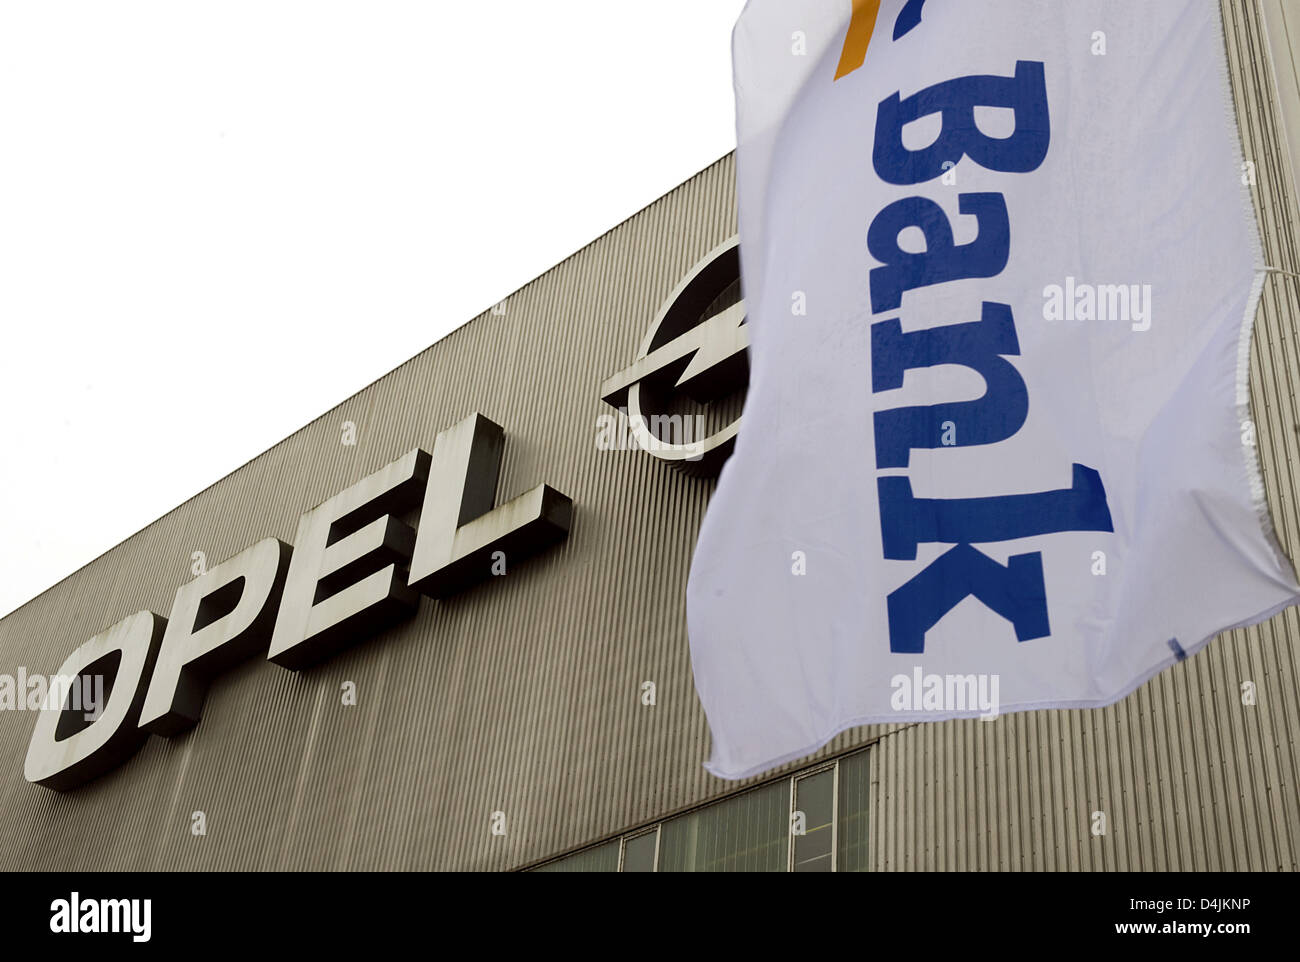 The banner of Opel bank GMAC seen in front of the Opel plant